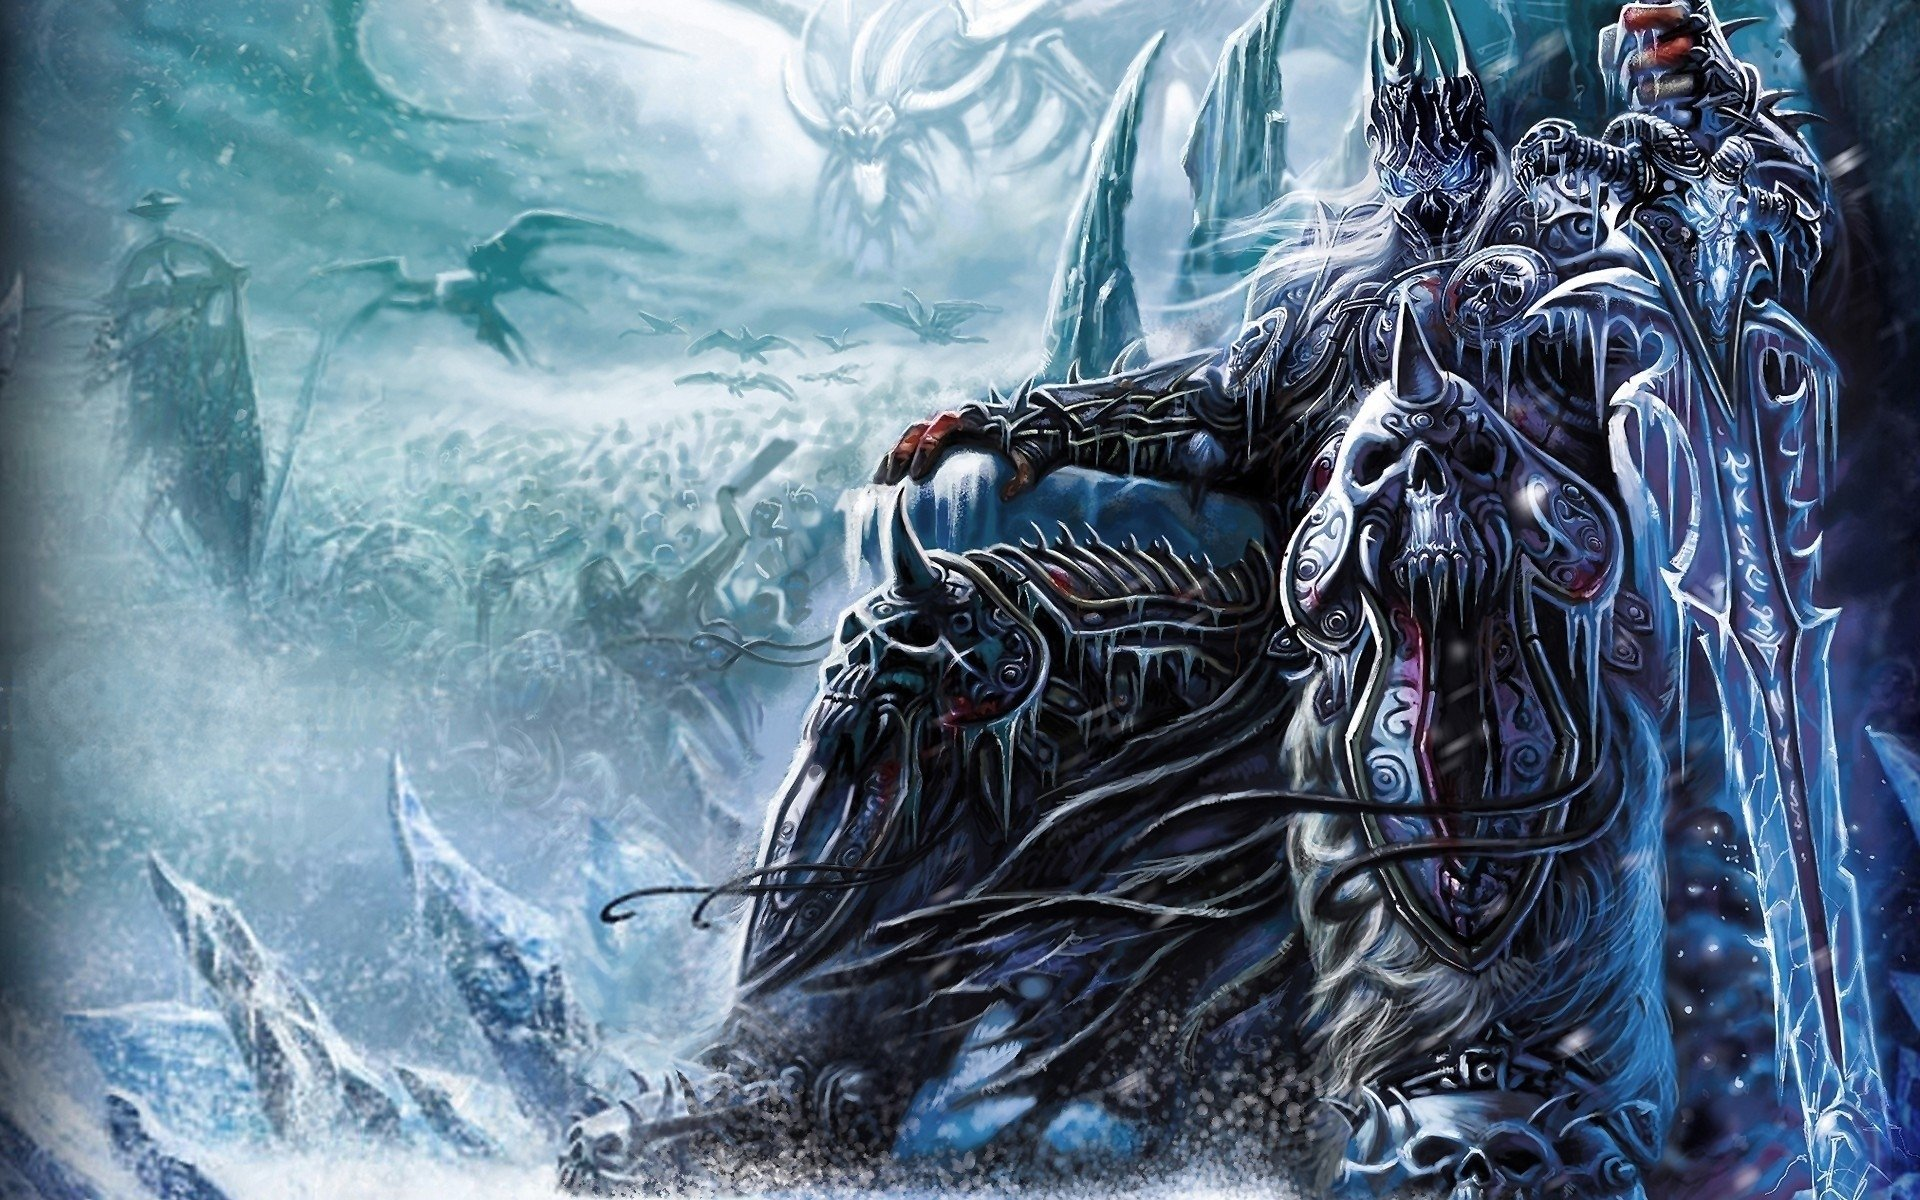 Video Game - World Of Warcraft  Creature Dark Game Lich King Wallpaper